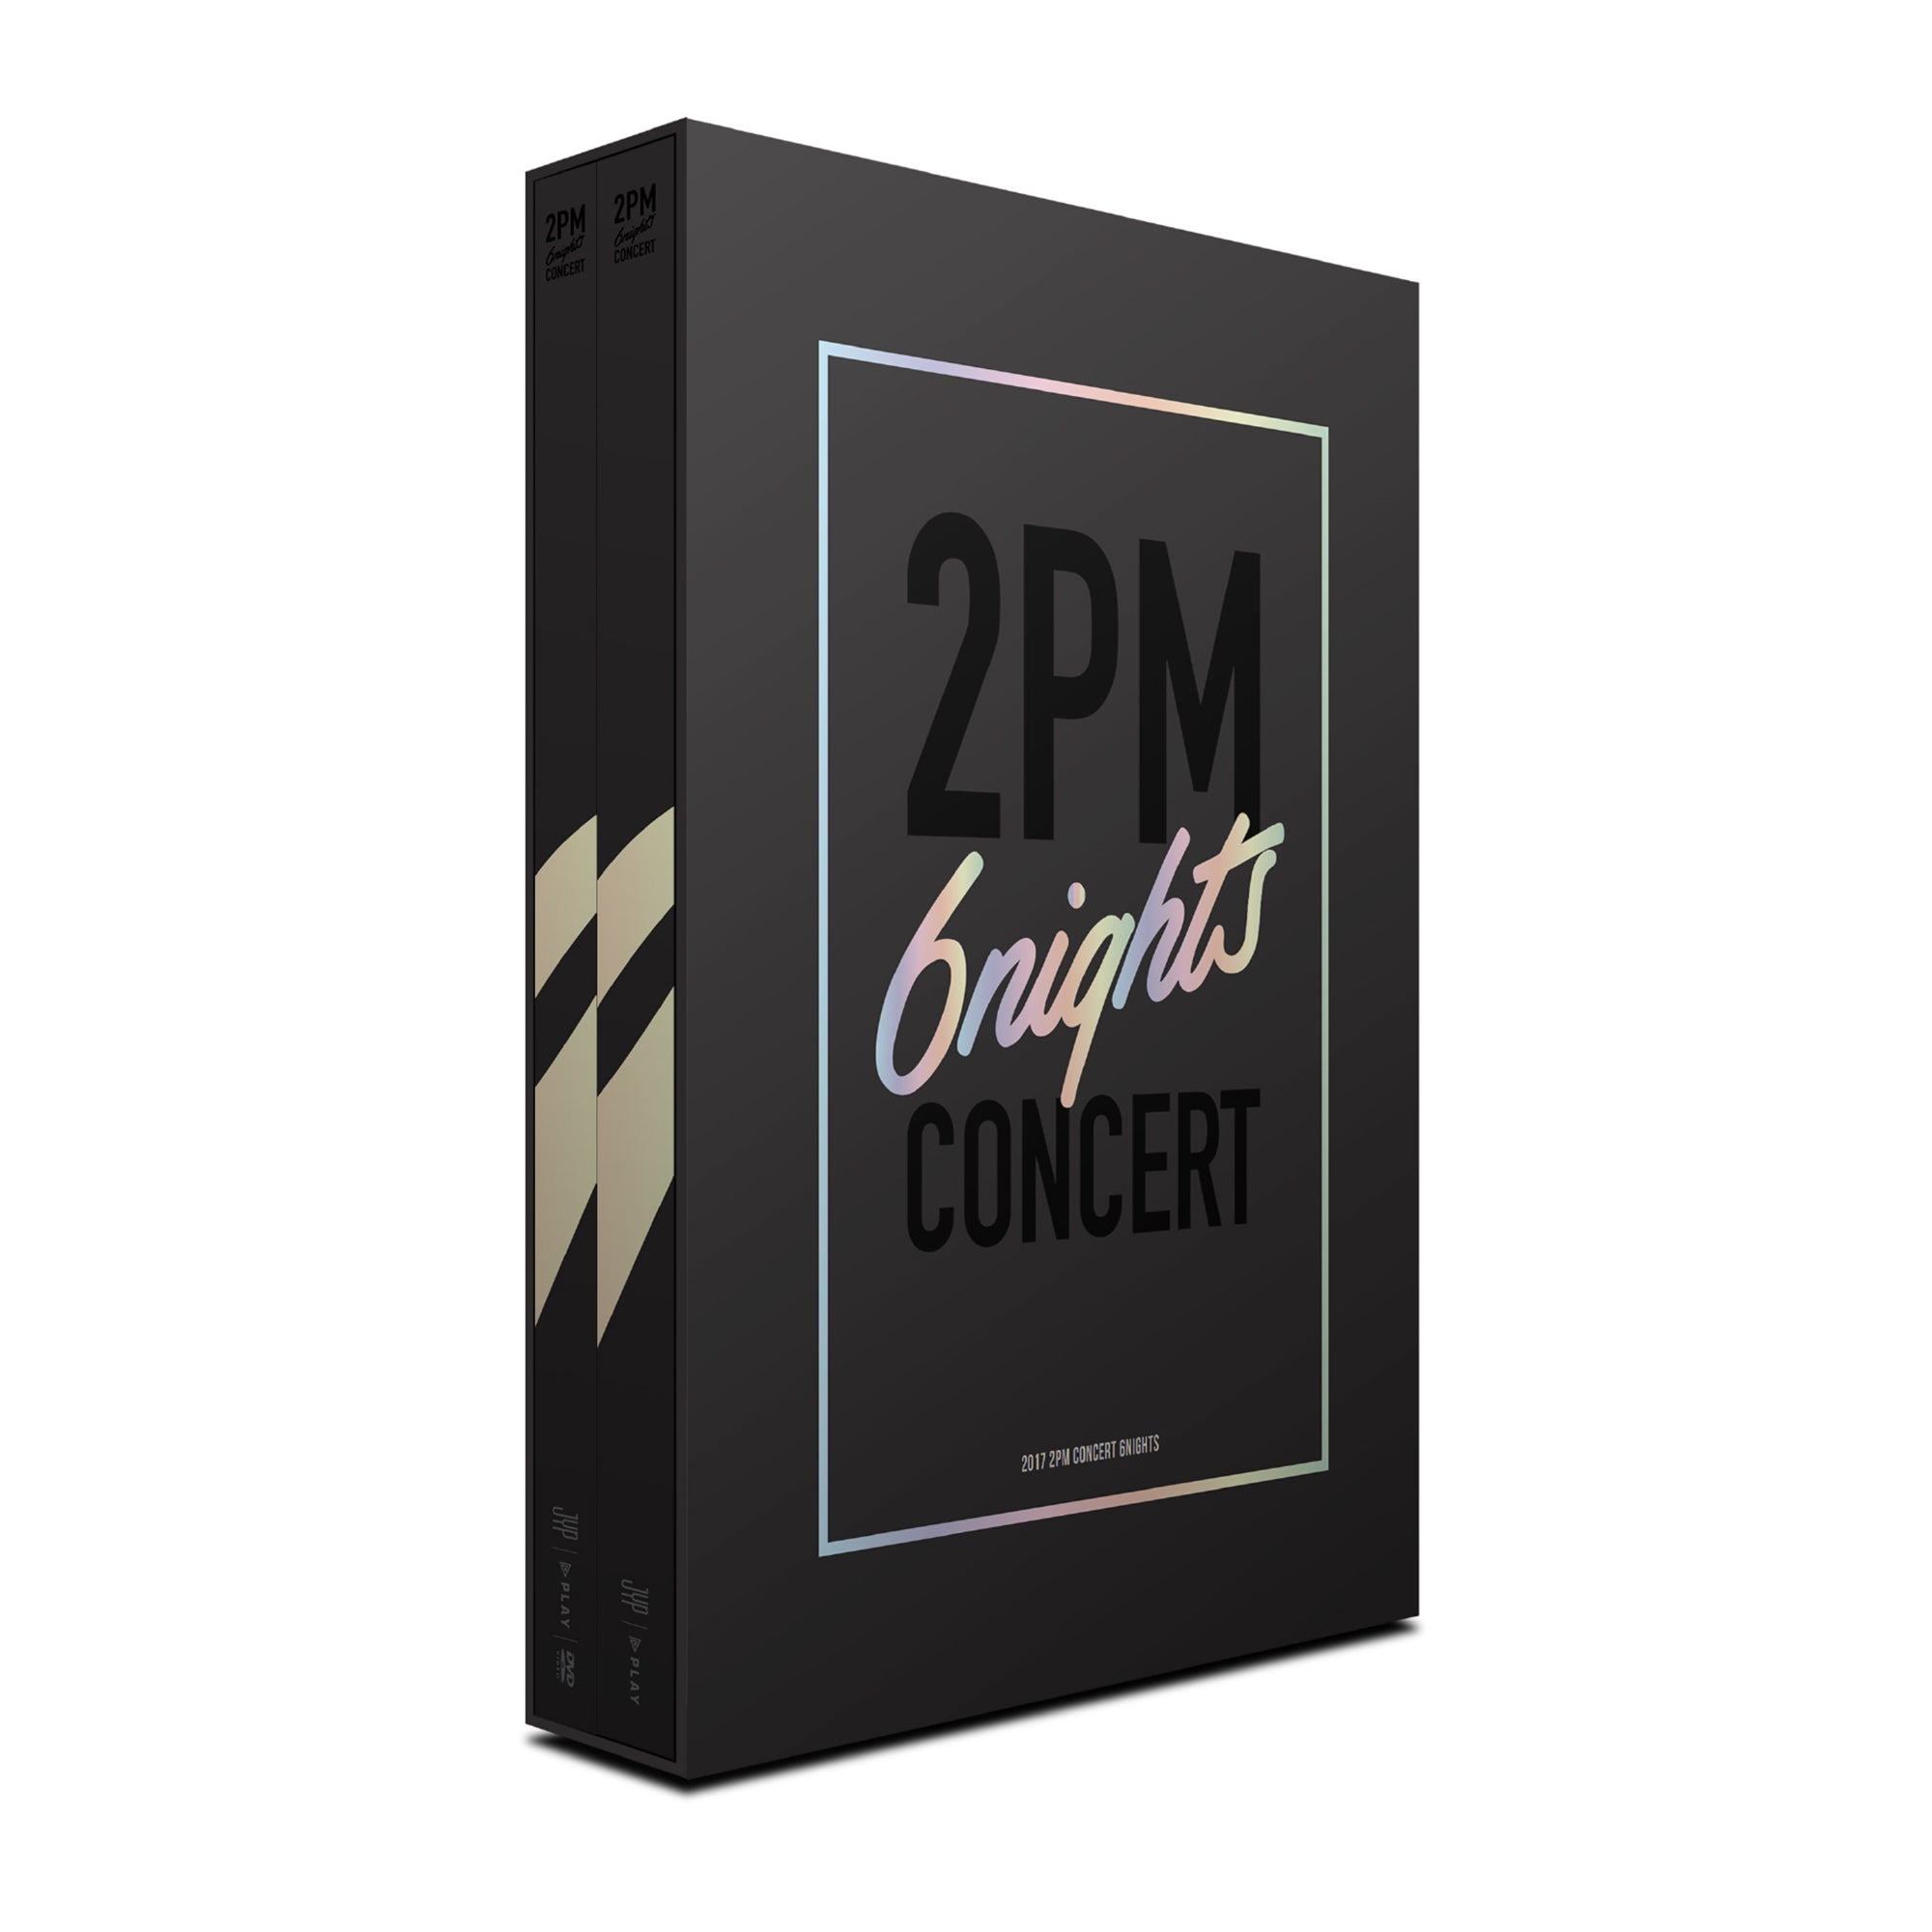 2PM '2017 2PM CONCERT 6NIGHTS'